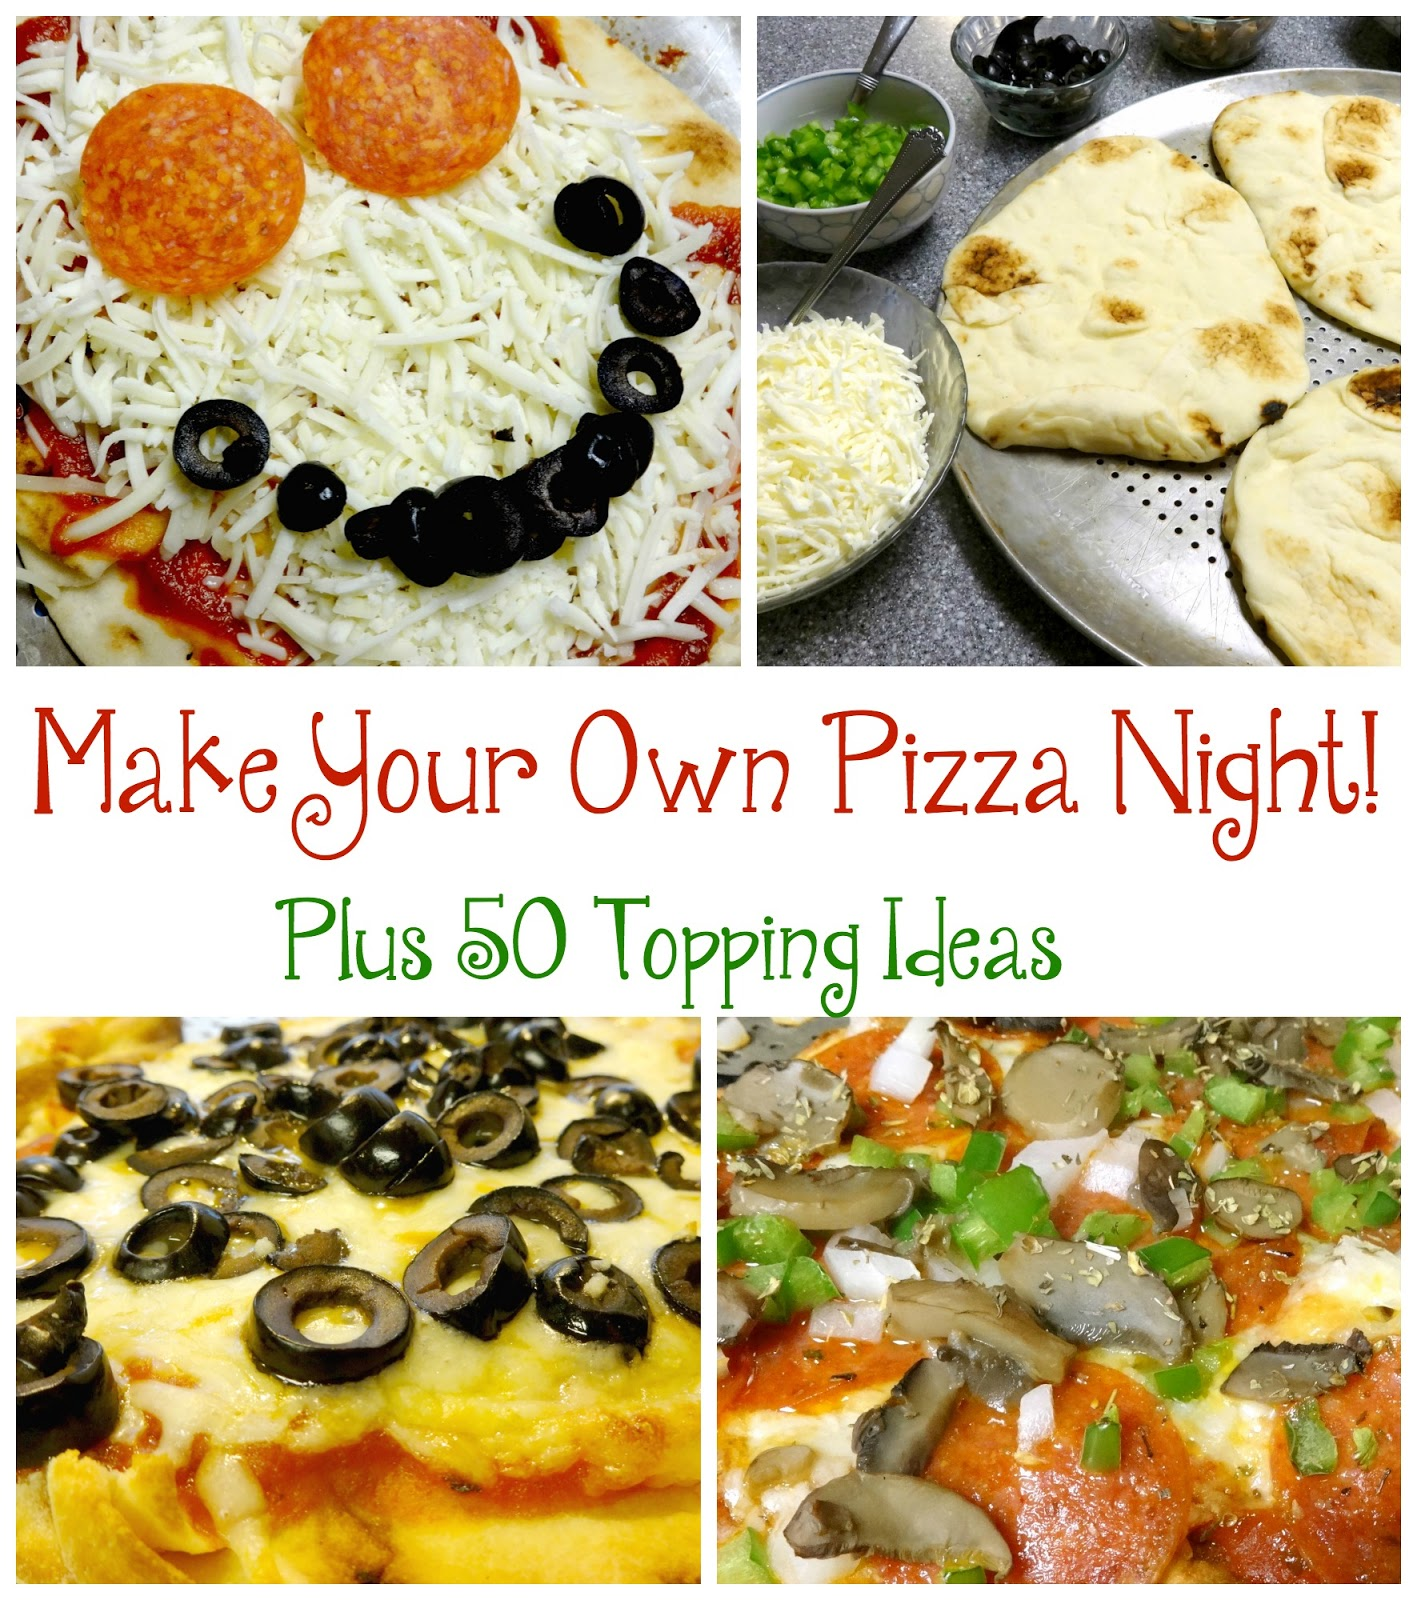 Sparkle And Splatter Make Your Own Pizza Night Plus 50